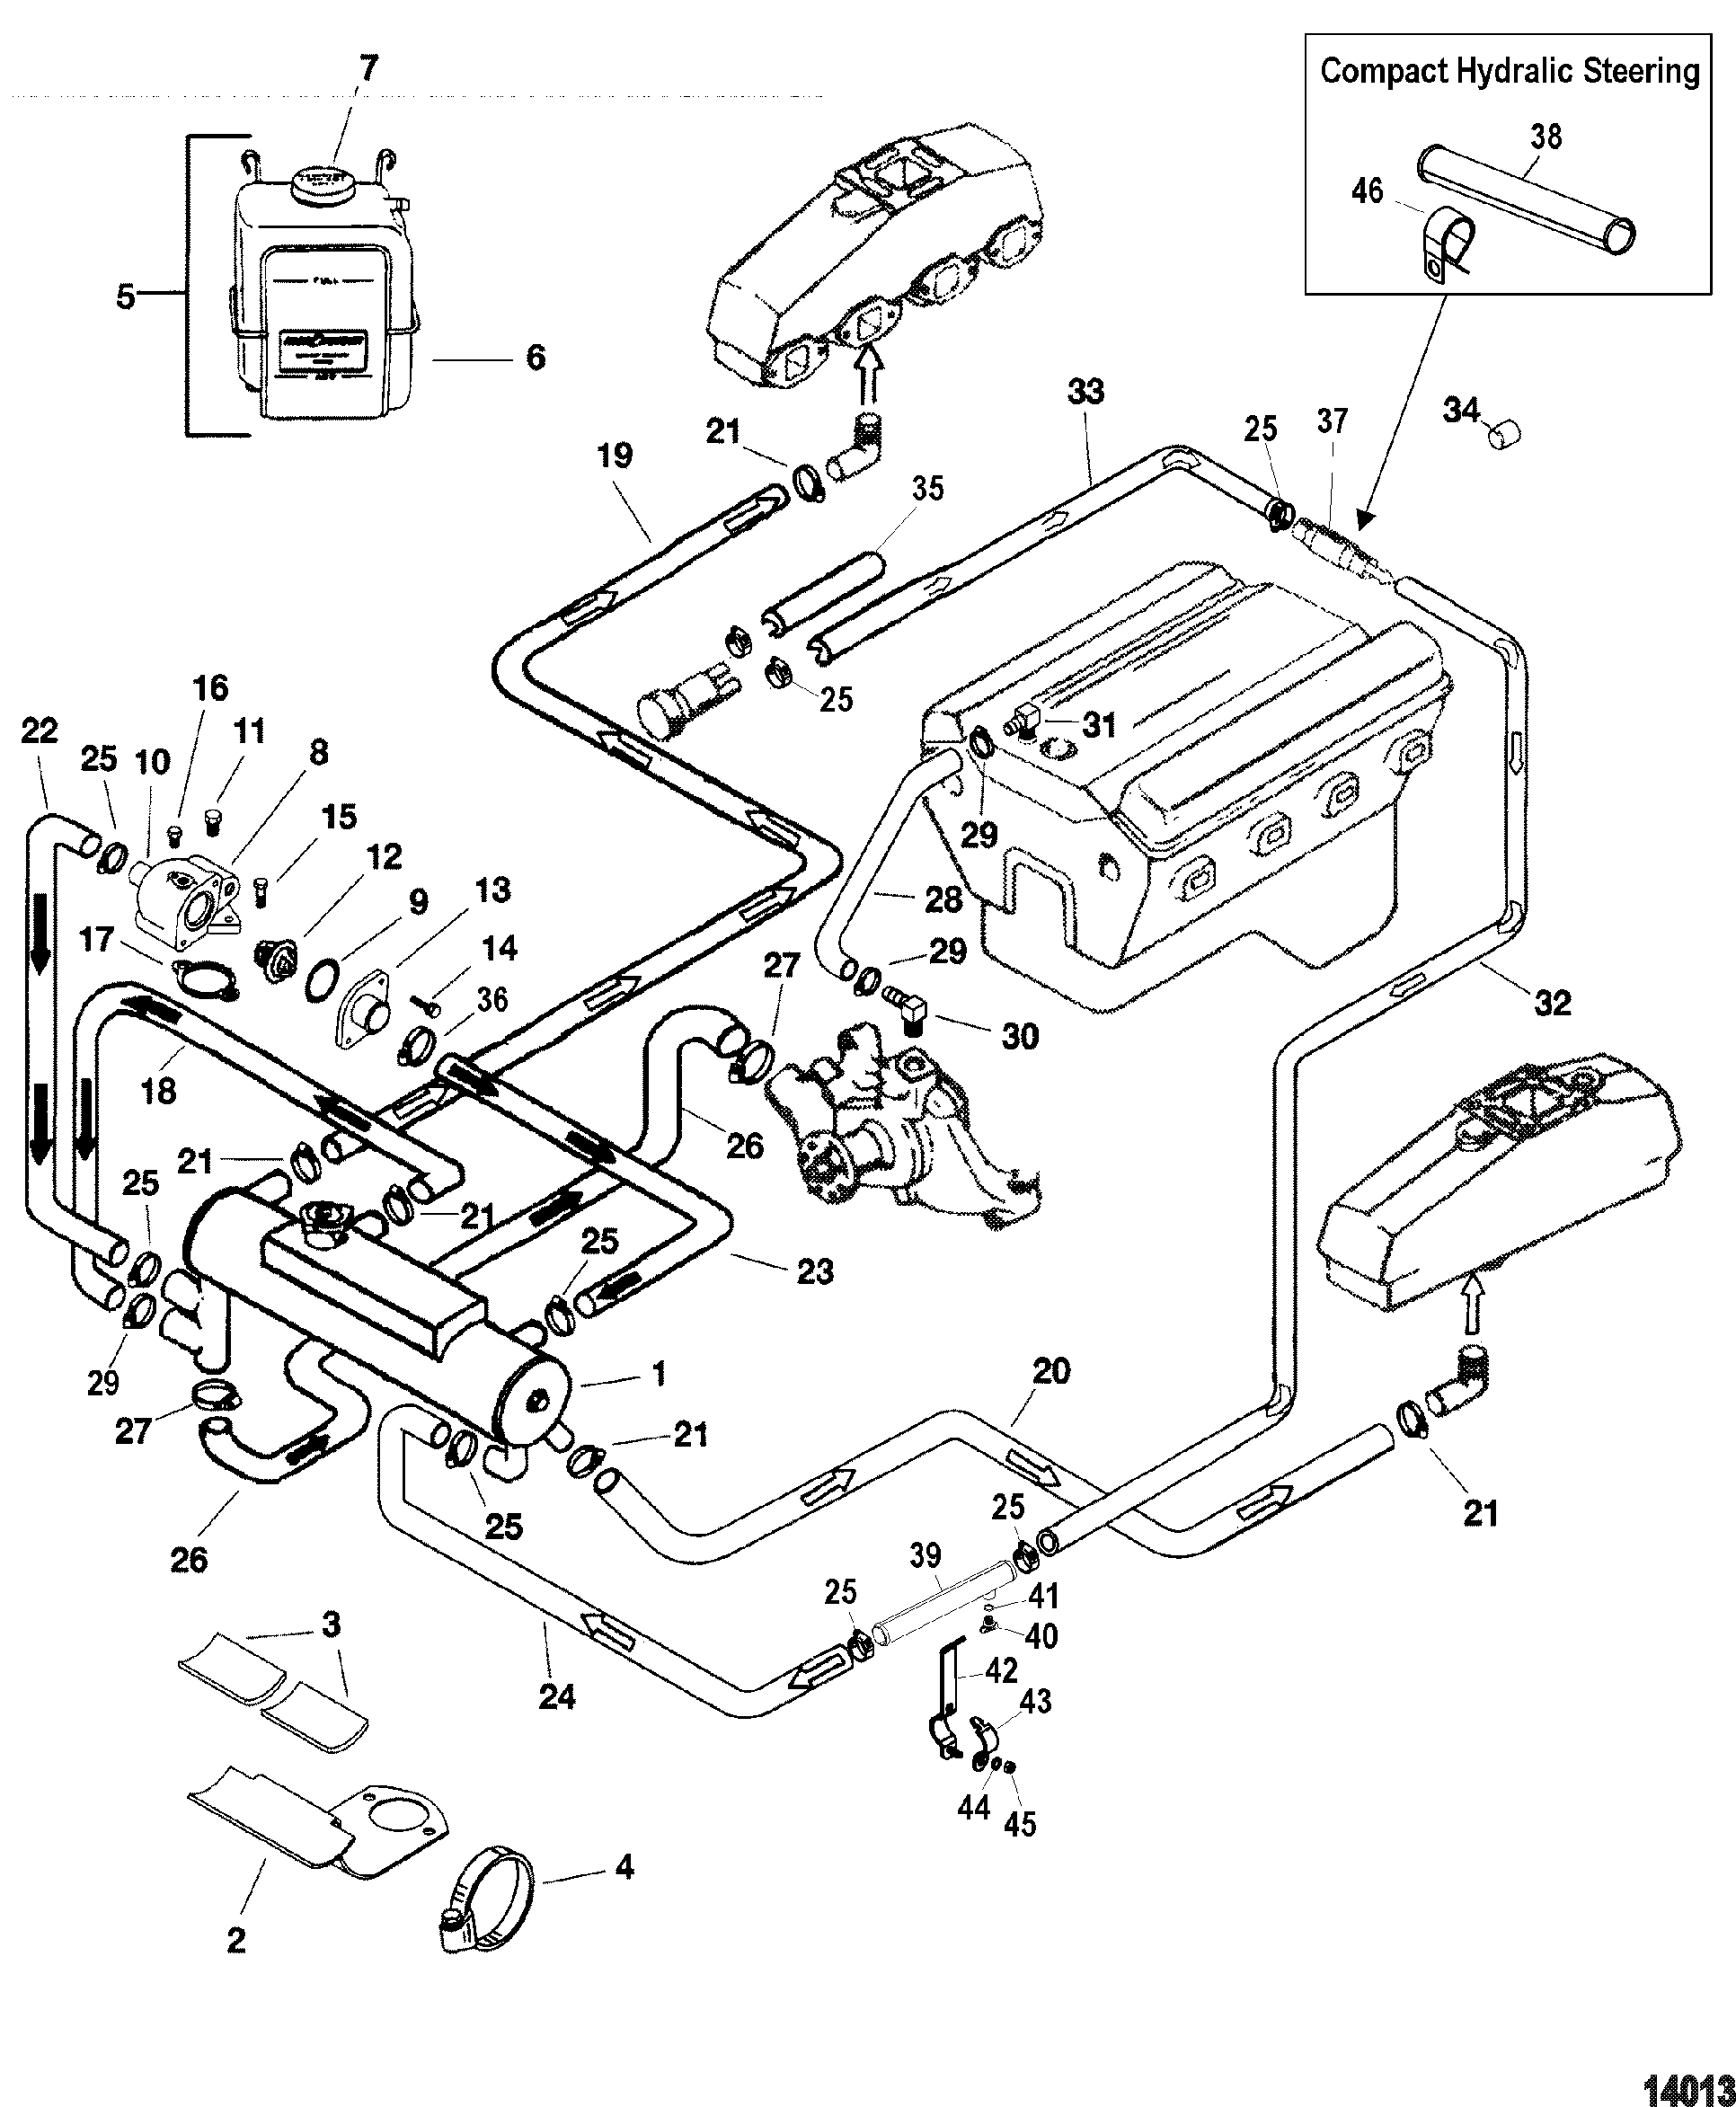 Mercruiser 3 0 Cooling System Diagram